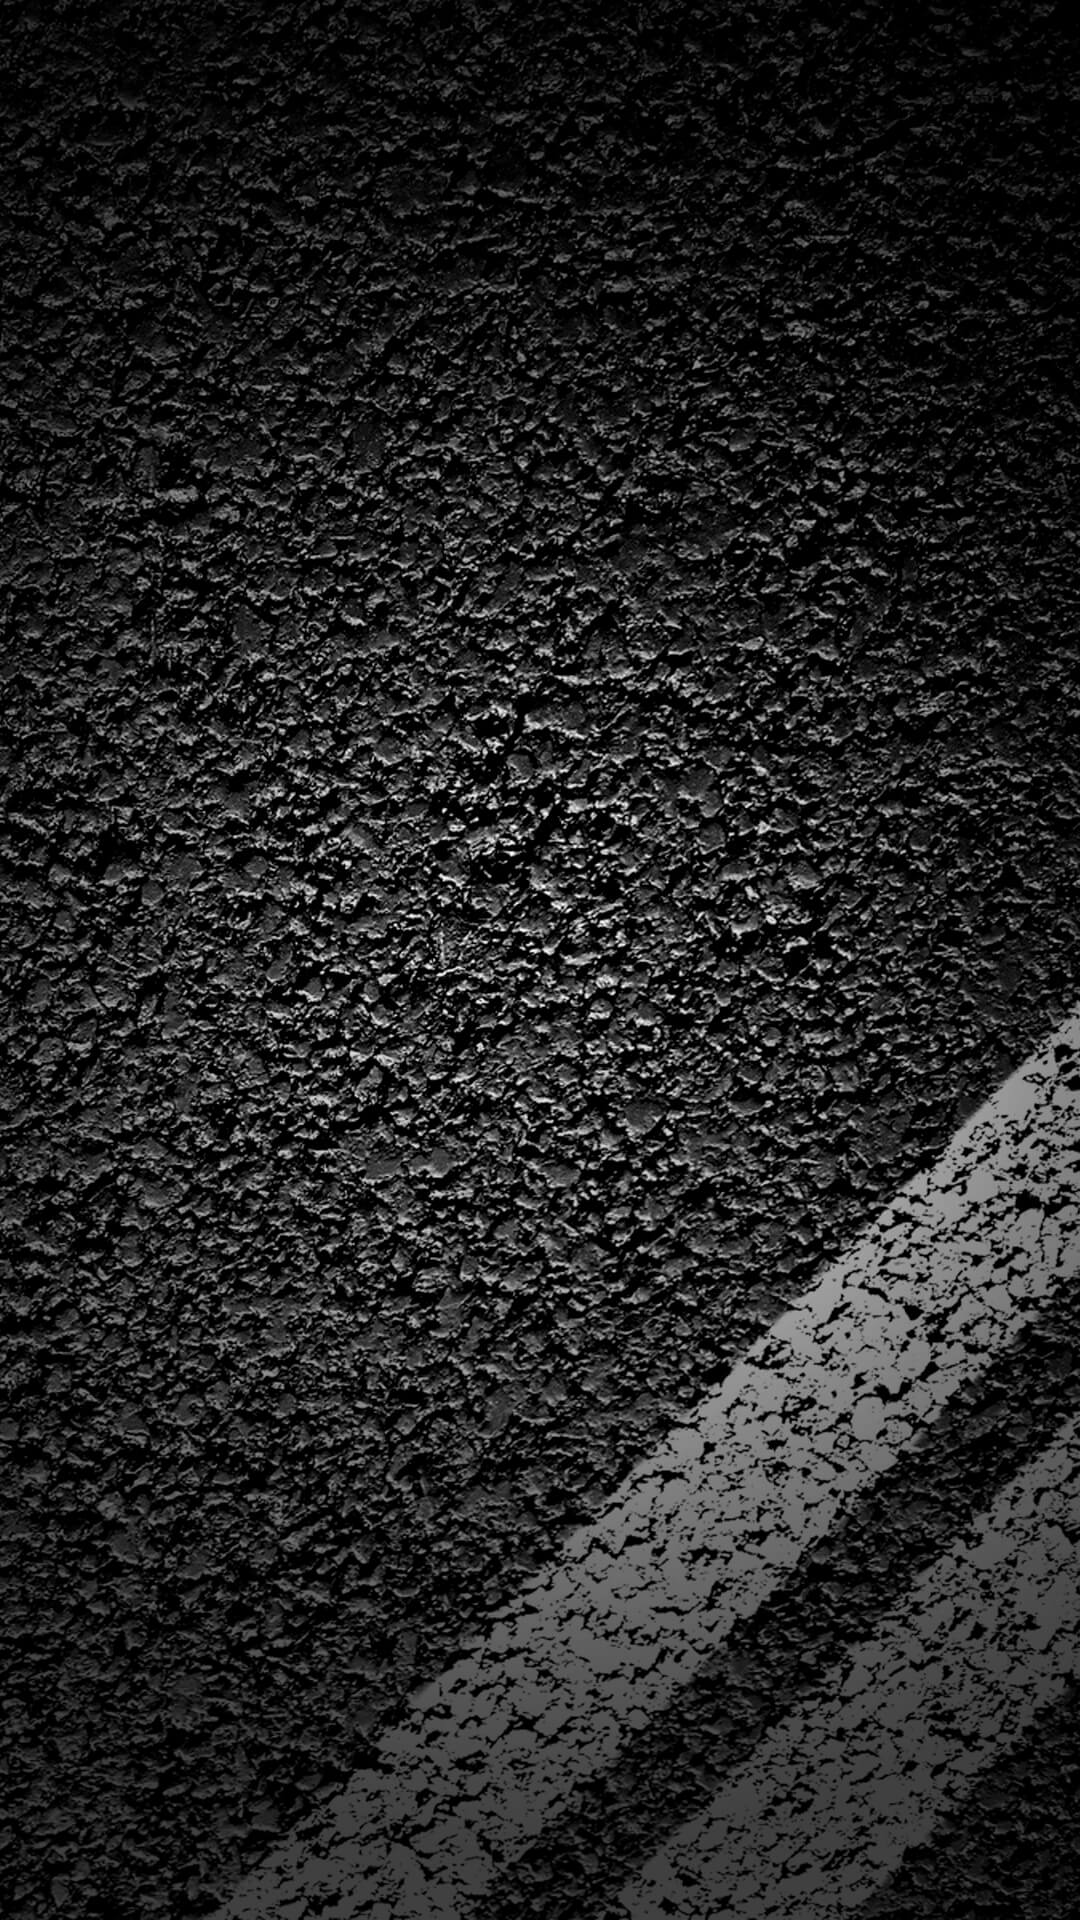 asphalt route texture noir iphone 7 plus hd wallpaper